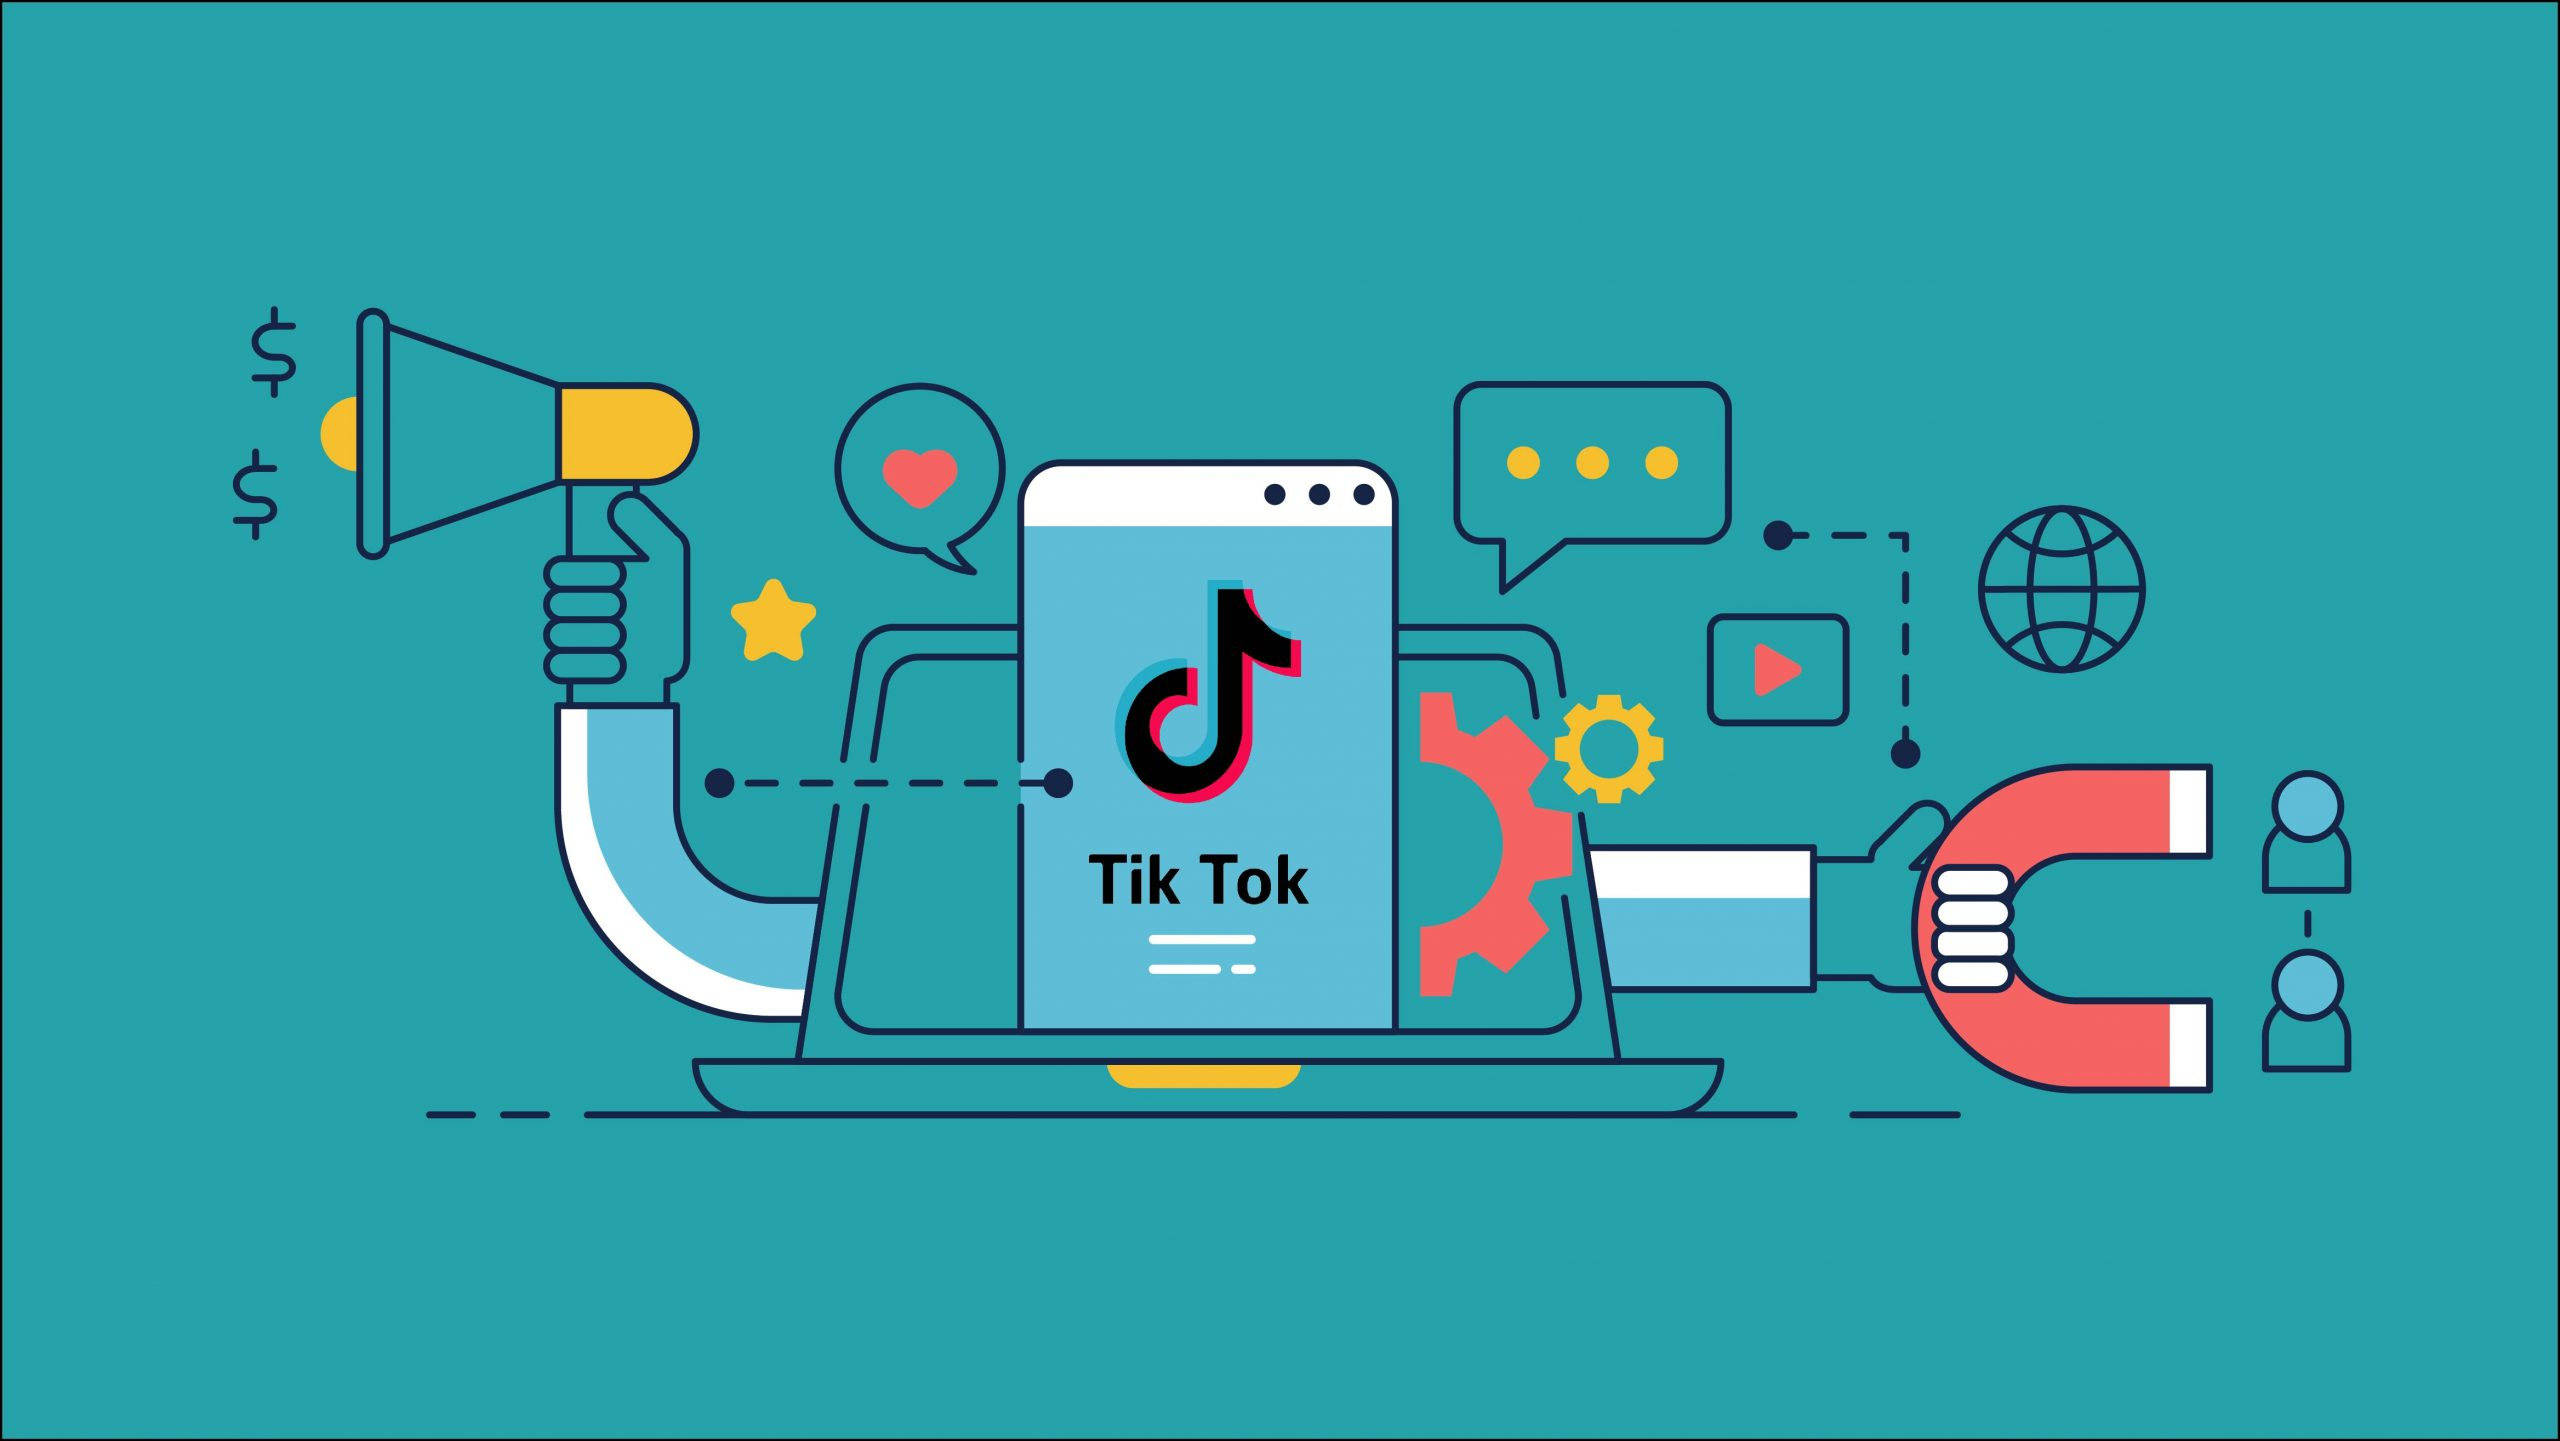 Should My Business Have a Strategy for TikTok?